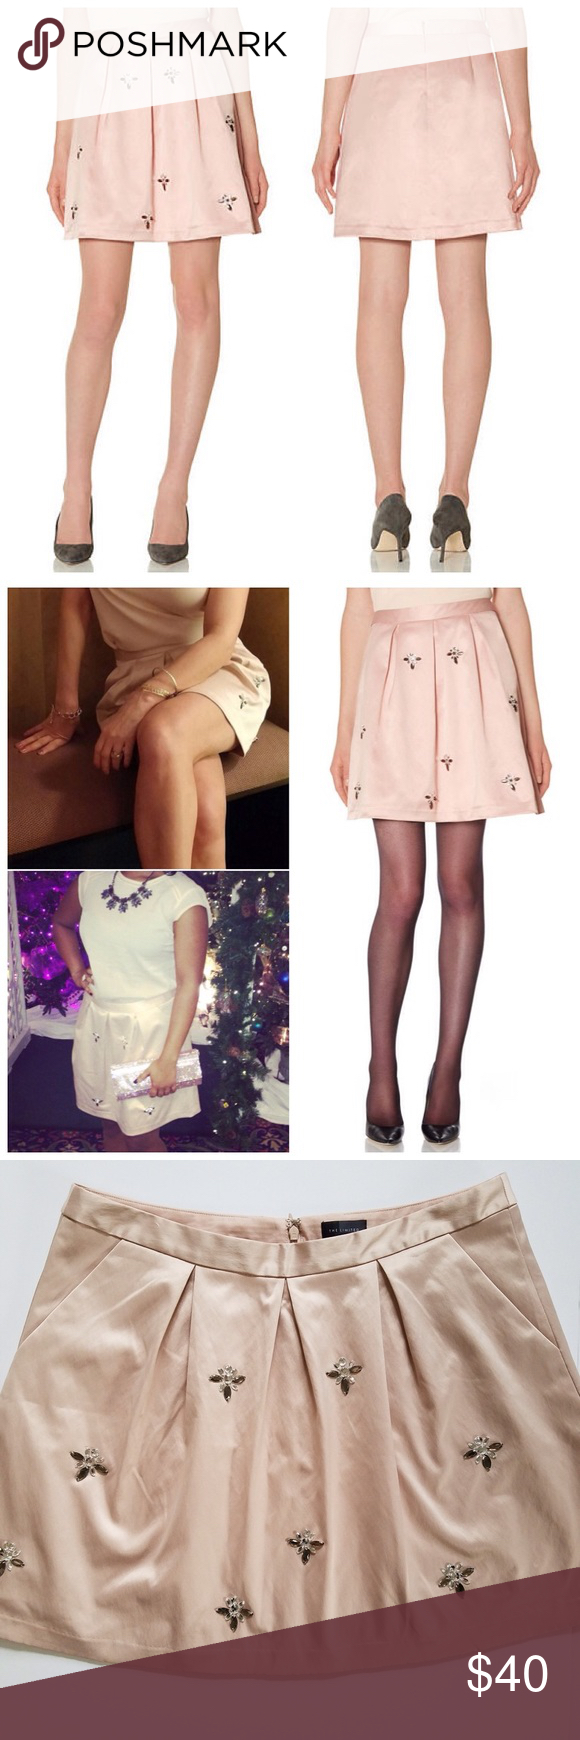 Spotted while shopping on Poshmark: NWOT Gorgeous Blush Pink Satin Jeweled Miniskirt! #poshmark #fashion #shopping #style #The Limited #Dresses & Skirts